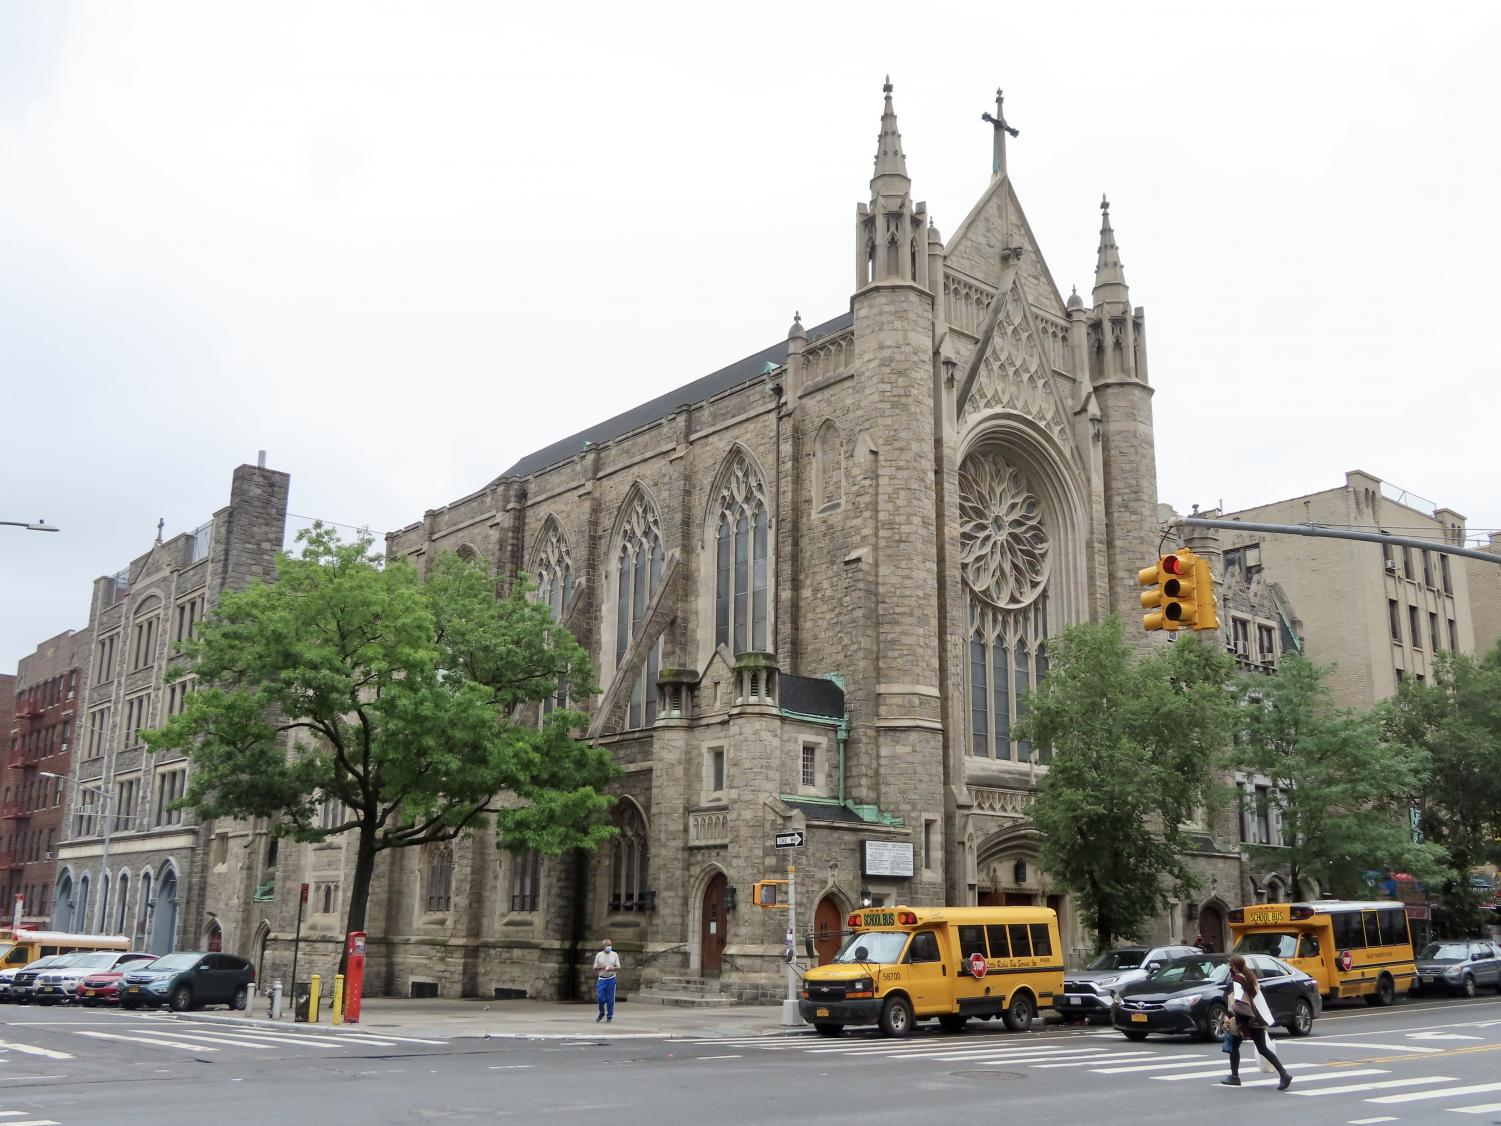 An image of a cathedral looking church in Washington Heights